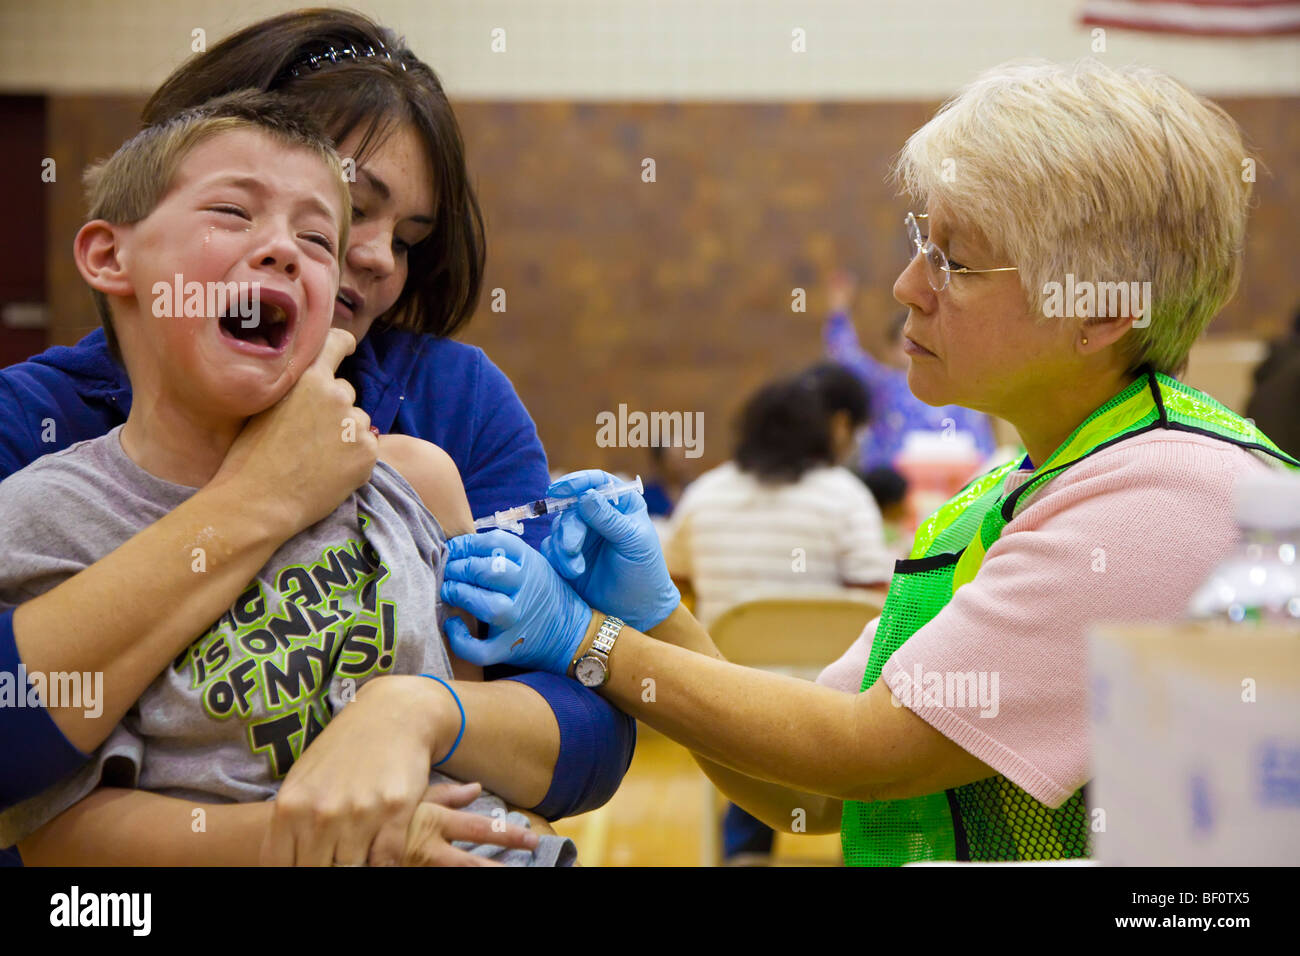 Hamtramck, Michigan - A health care worker vaccinates a boy against the H1N1 swine flu. - Stock Image